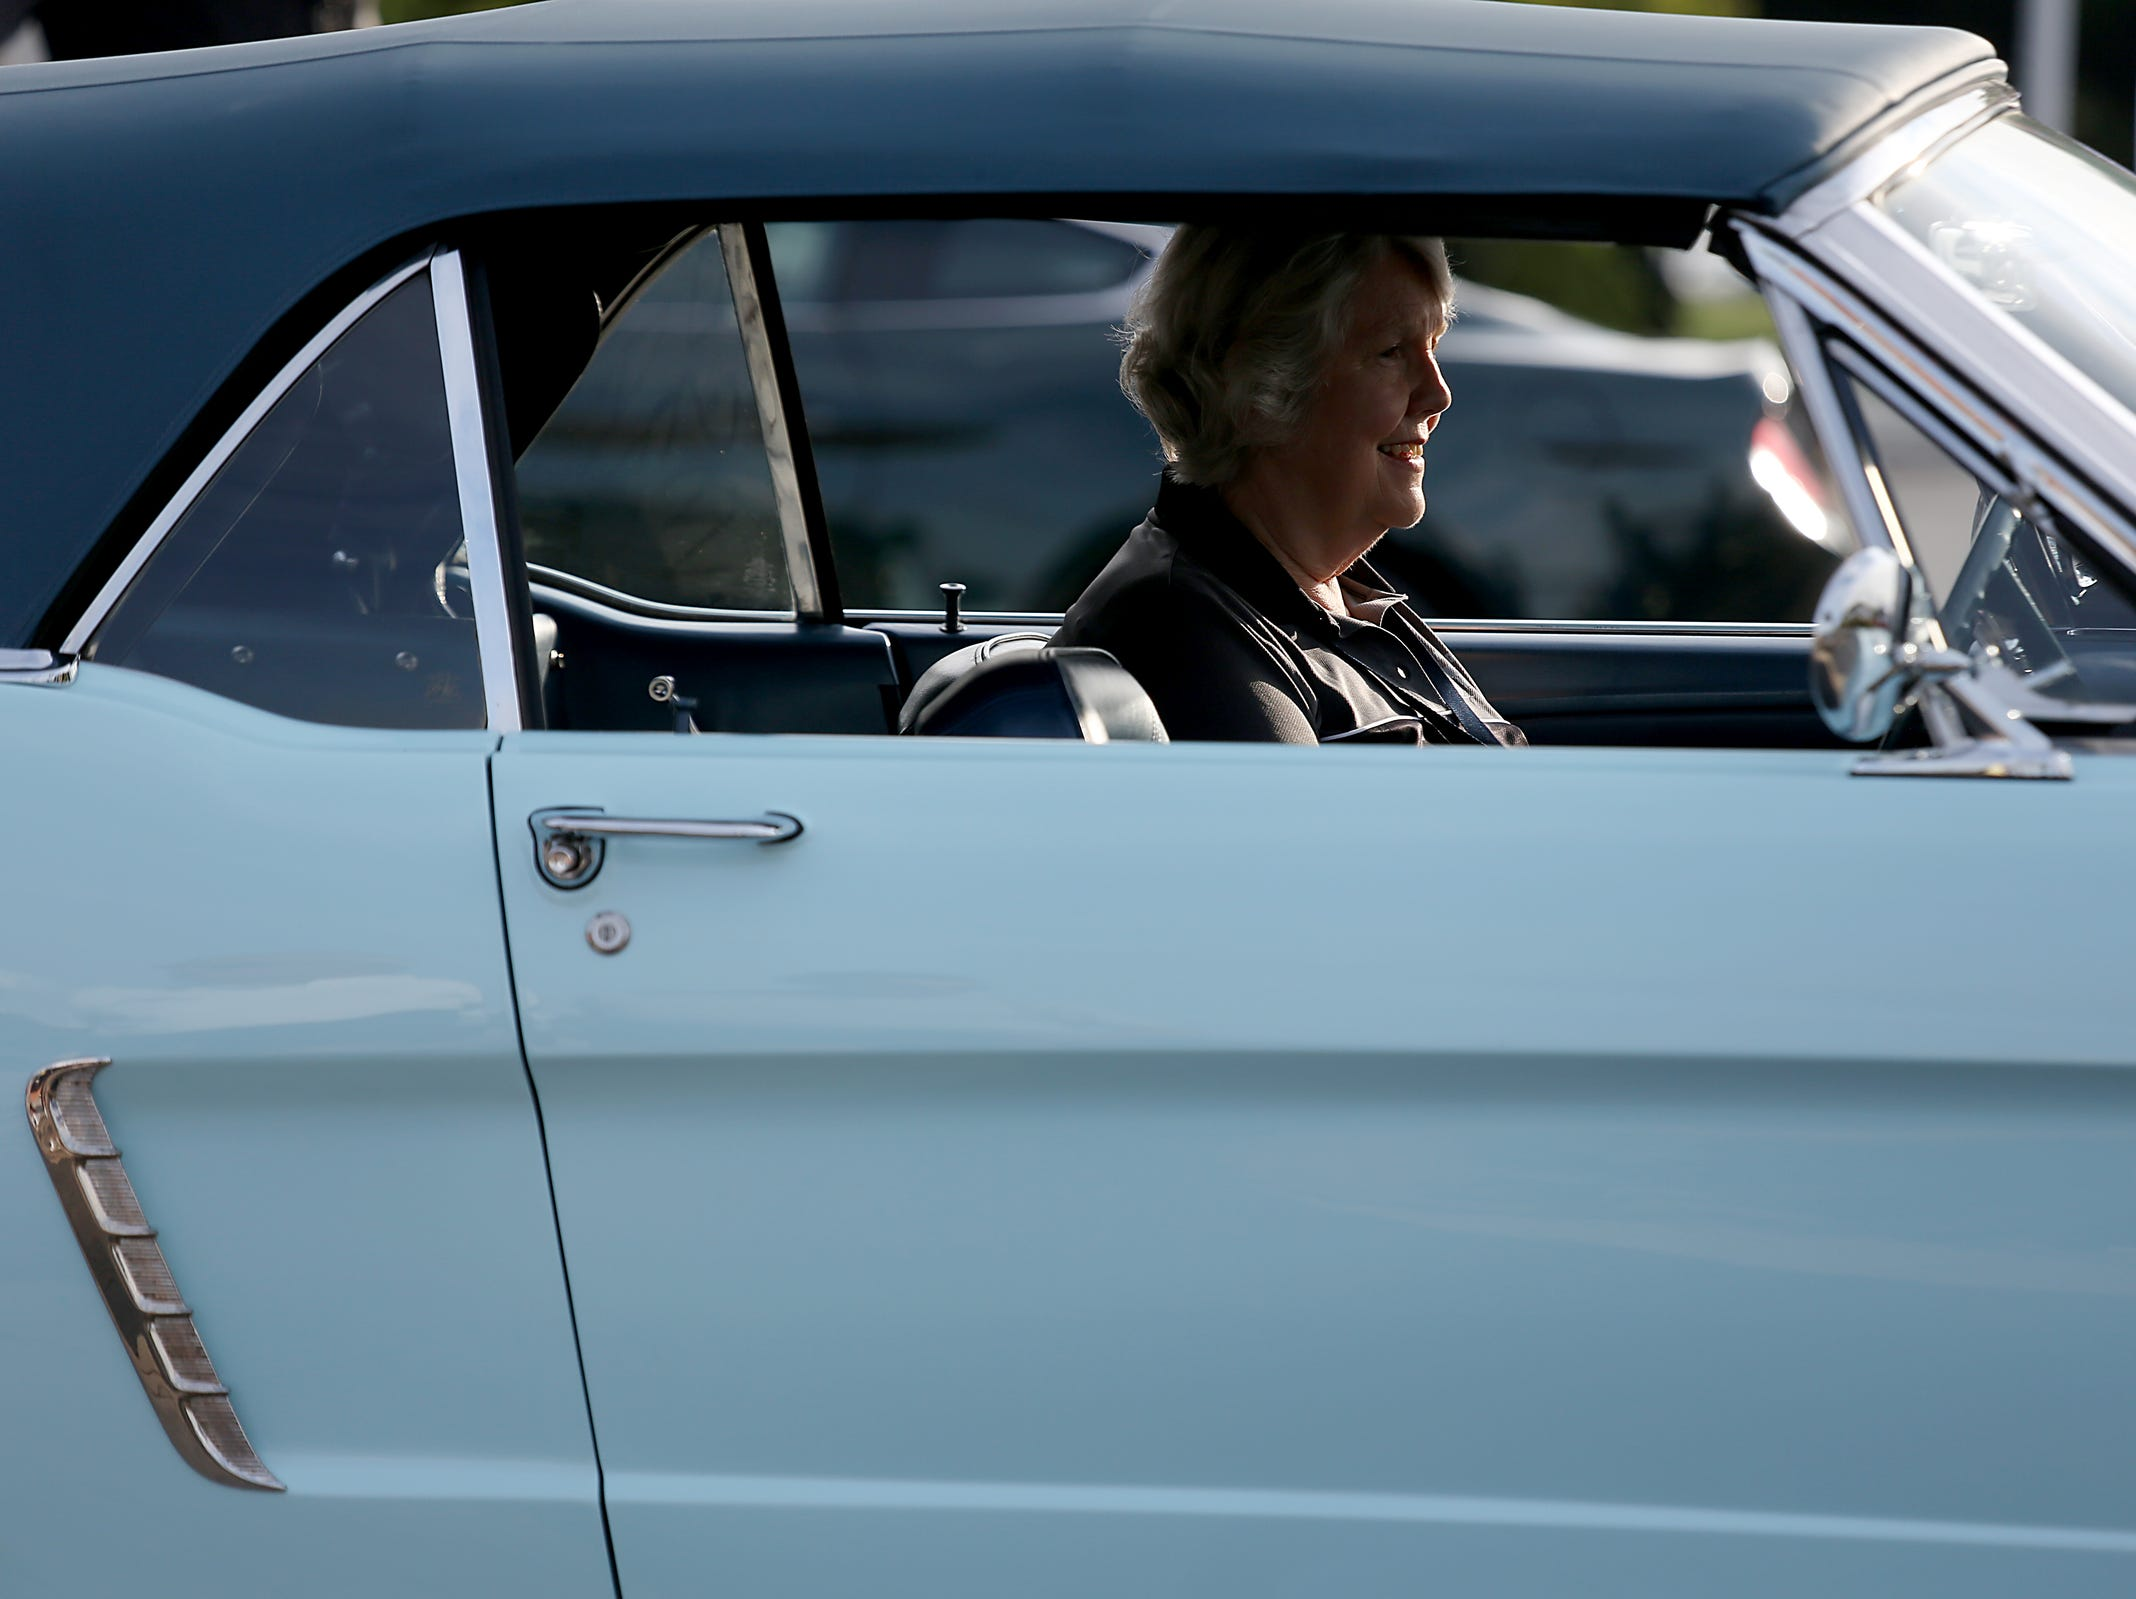 Gail Wise, 76, of Park Ridge, Illinois is the first buyer of a Ford Mustang and sits in the 1964 Mustang she purchased during a Ford event celebrating the 10,000,000 Mustang built at the Ford Motor Company World Headquarters in Dearborn on Wed., Aug 8, 2018.